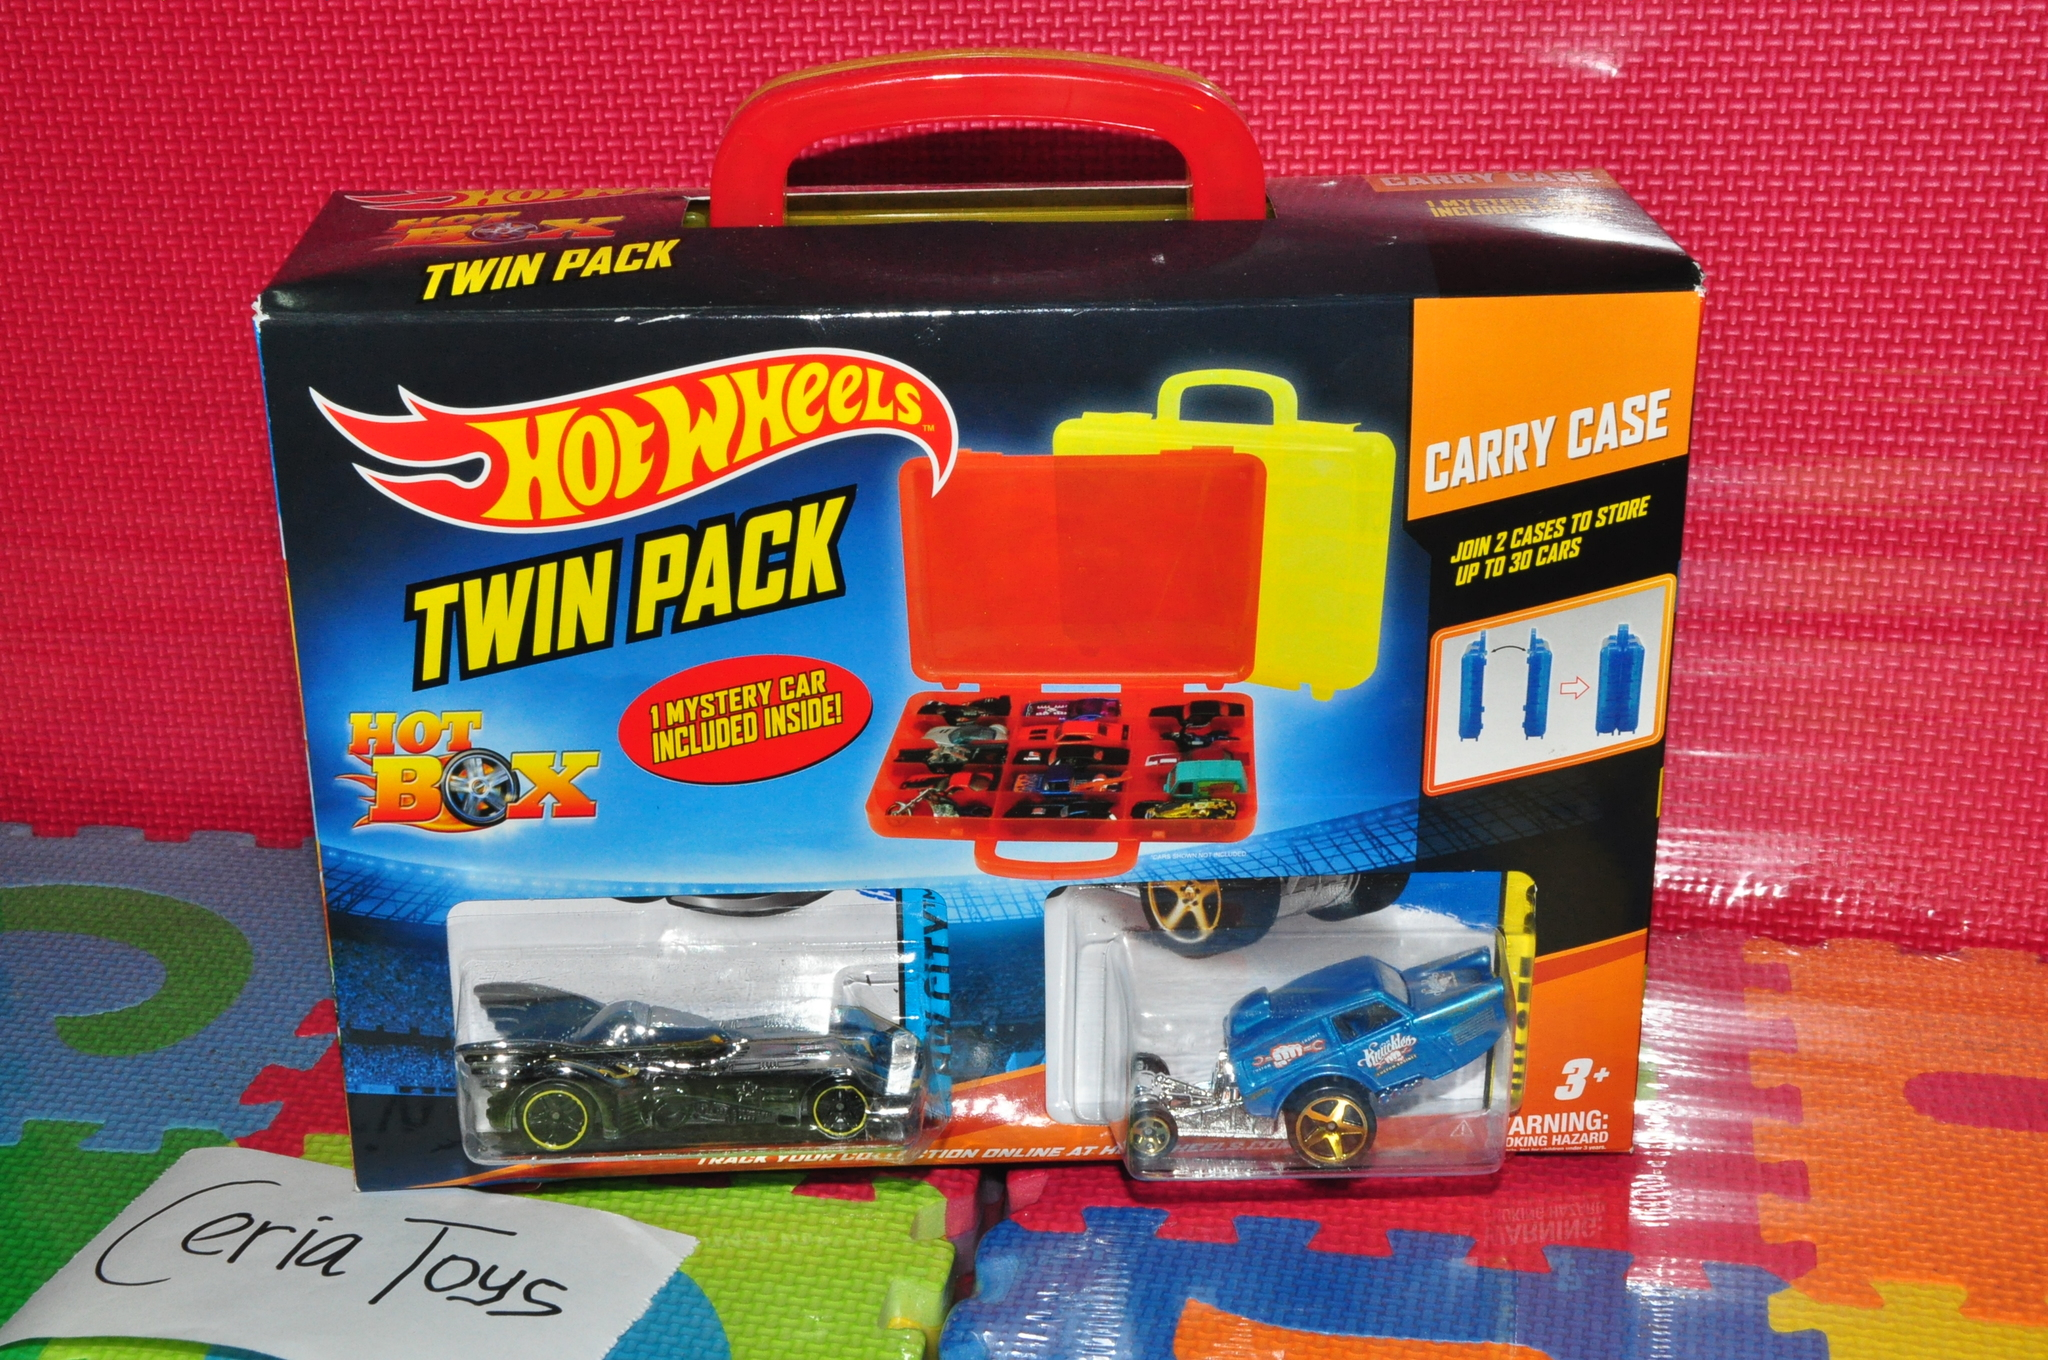 Jual CARRY CASE BOX HOT WHEELS TWIN PACK (Including 3 pc Hotwheels) - Toko